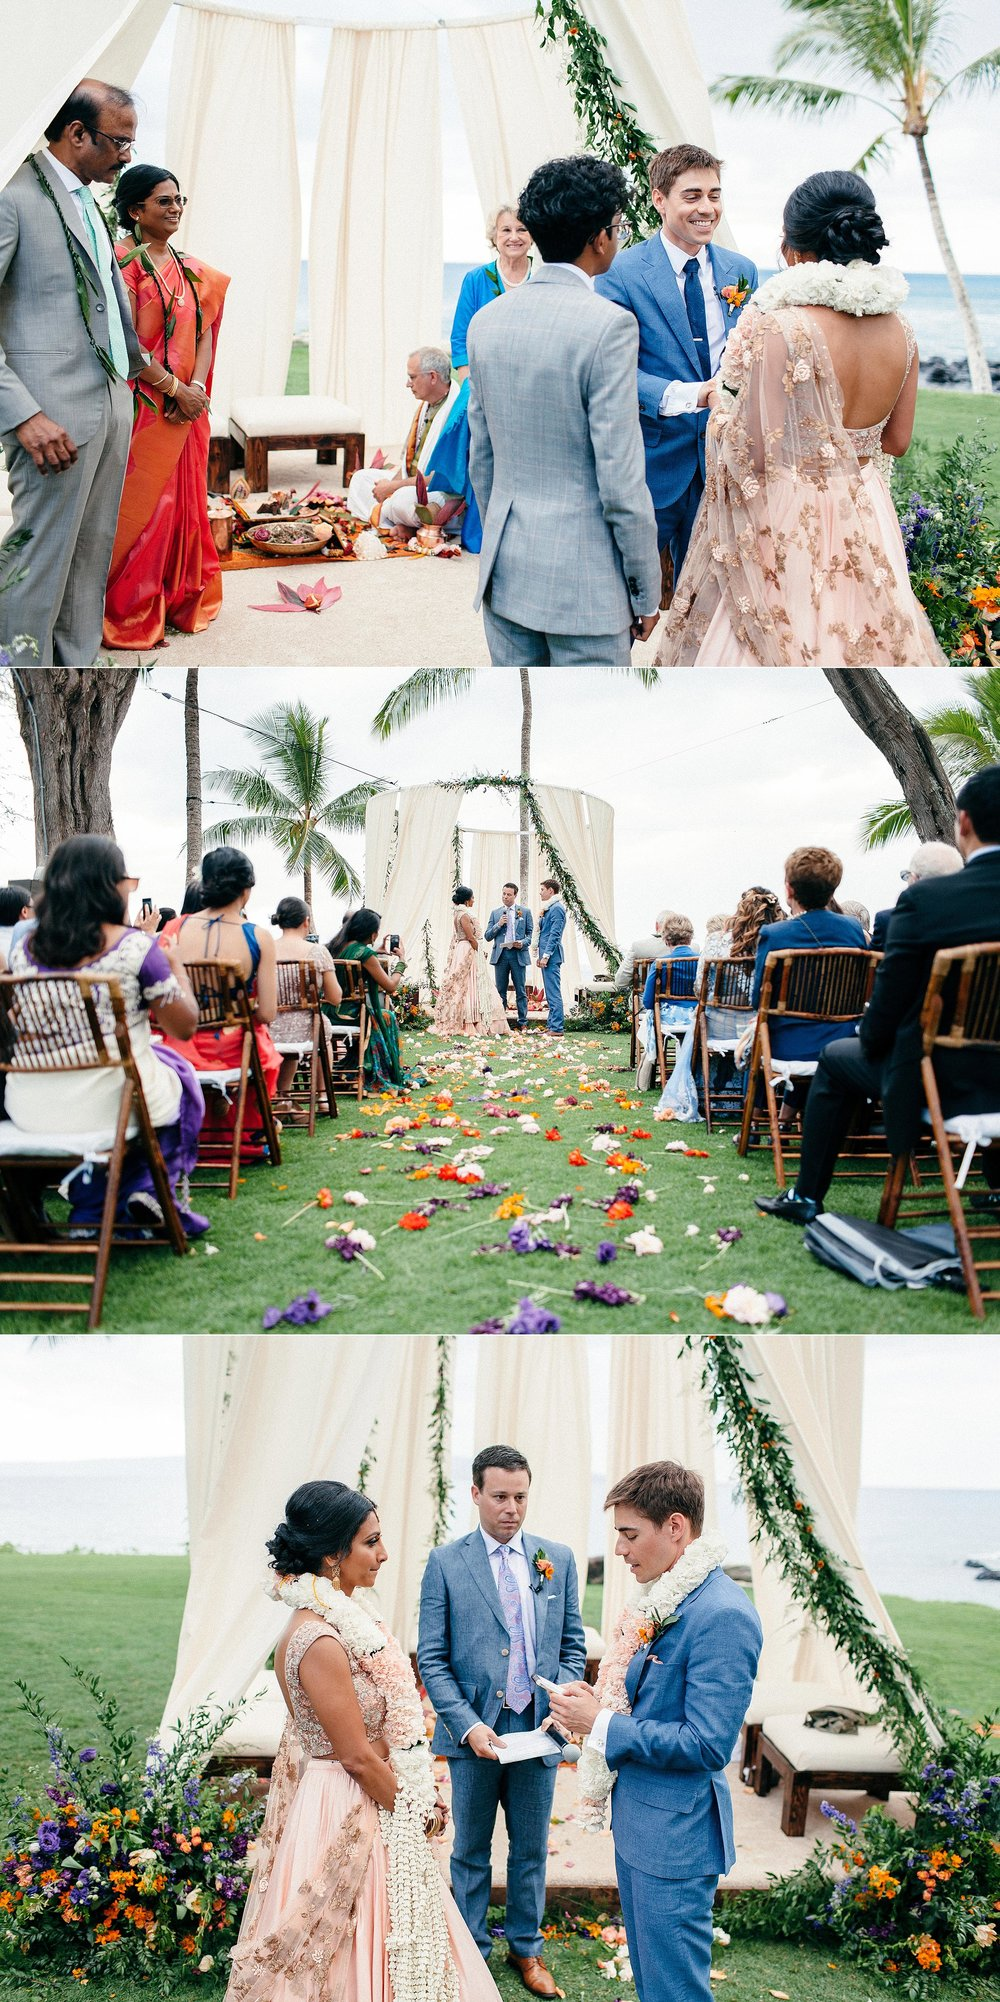 Maui-Hawaii-Indian-Wedding-at Sugarman-Estate-Floral-Dress-and-Colorful-Details_0020.jpg